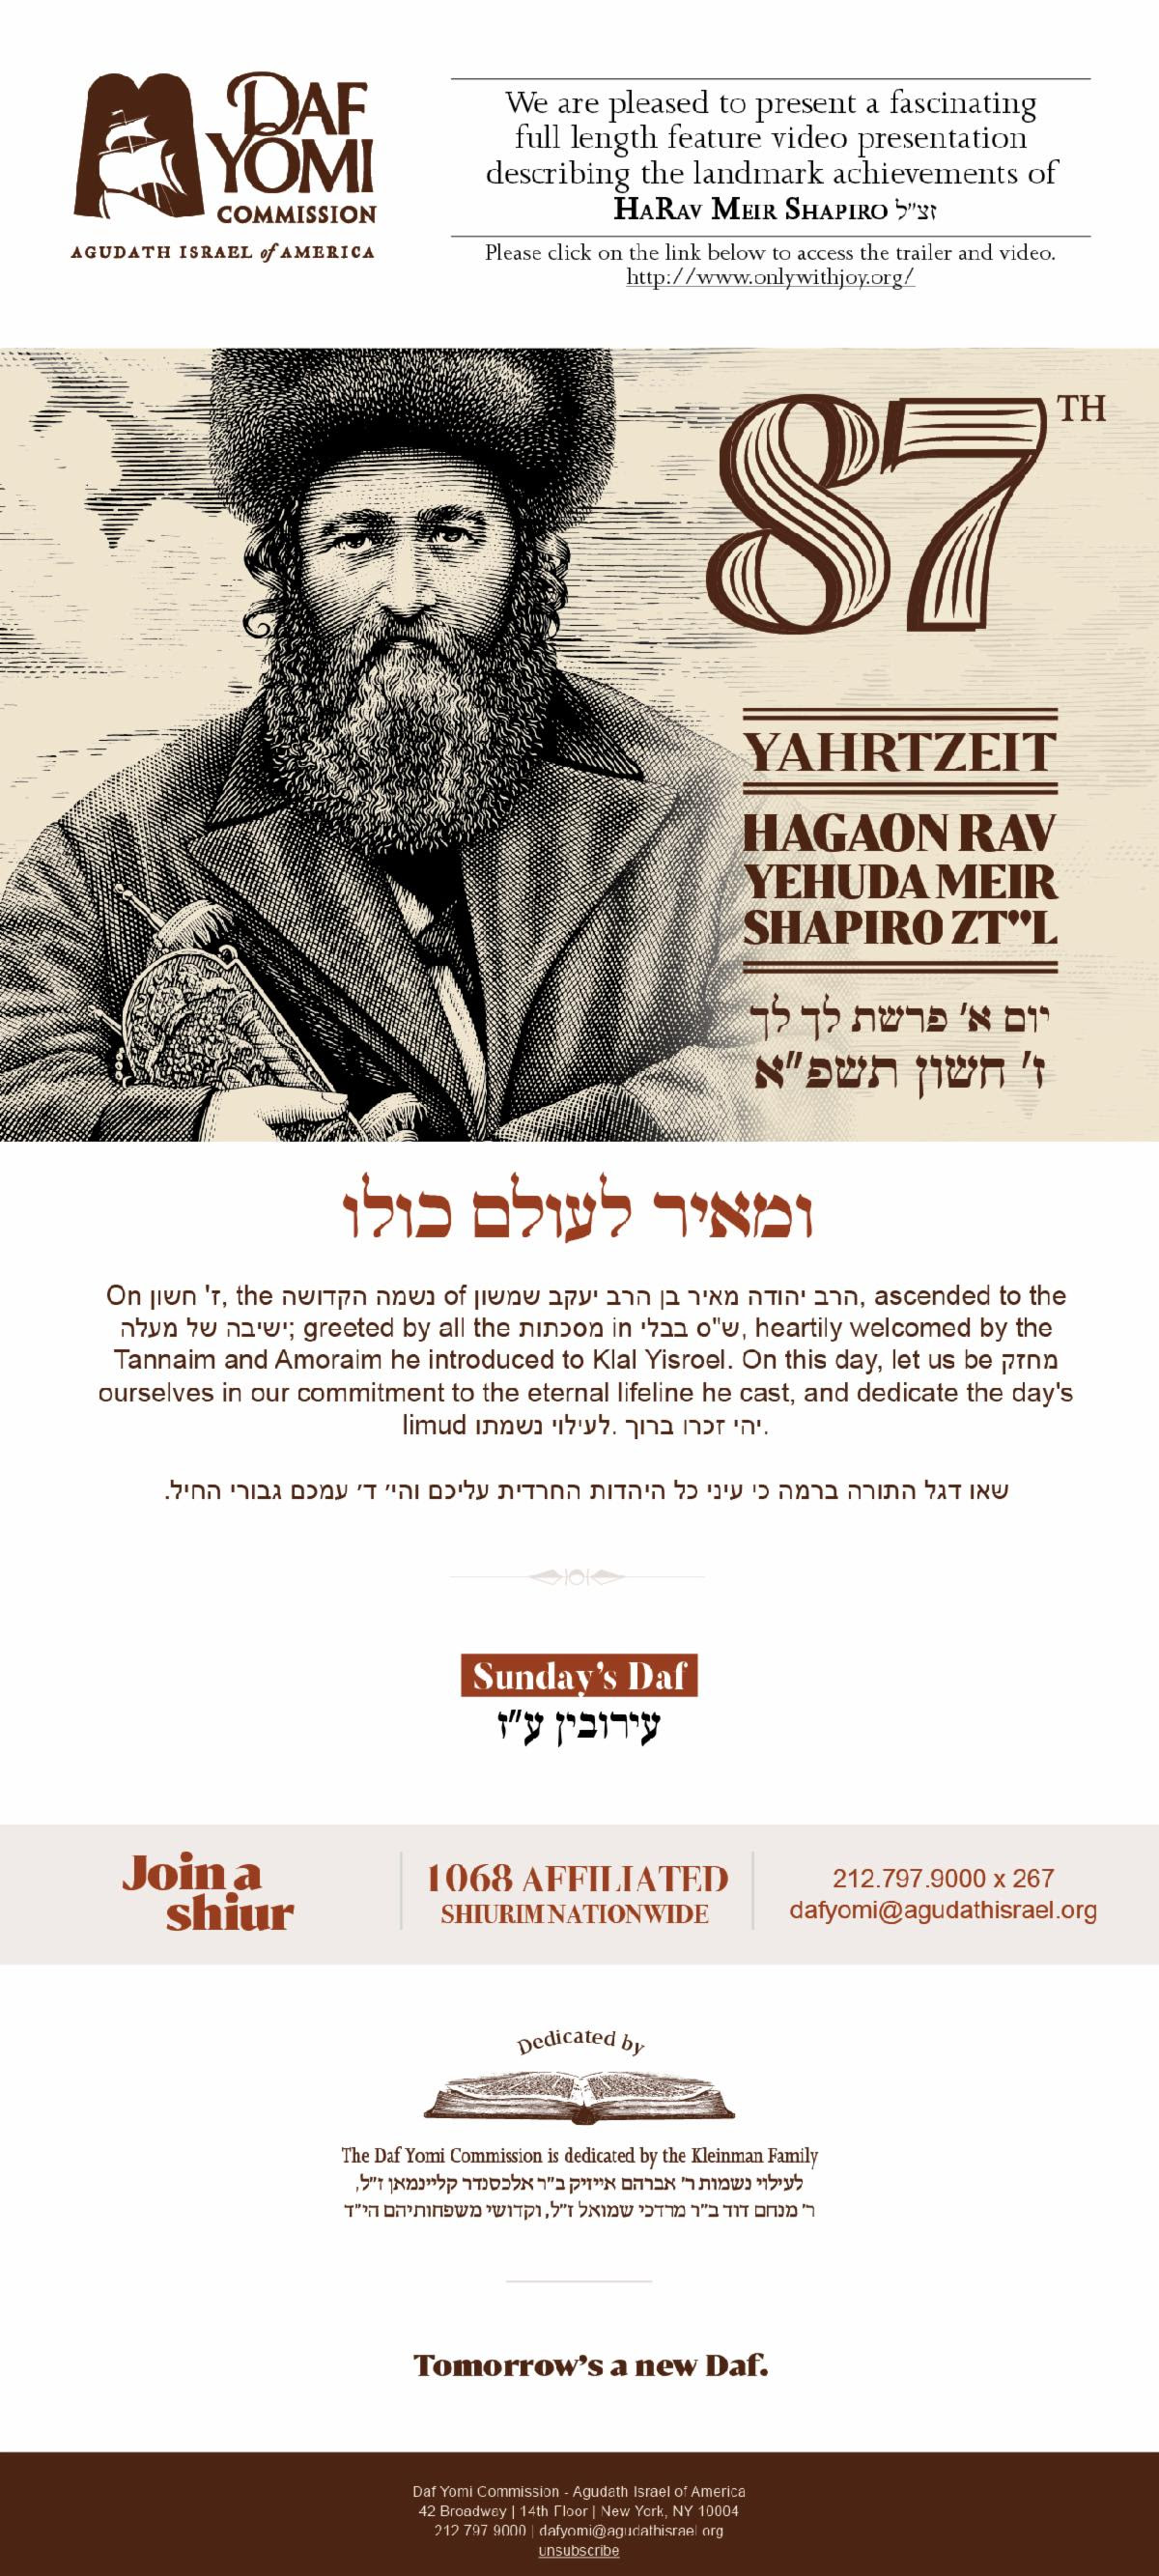 """Full Length Feature Film: Agudath Israel's Daf Yomi Commission Presents """"Only With Joy: The Life And Legacy Of Rabbi Meir Shapiro"""" 1"""